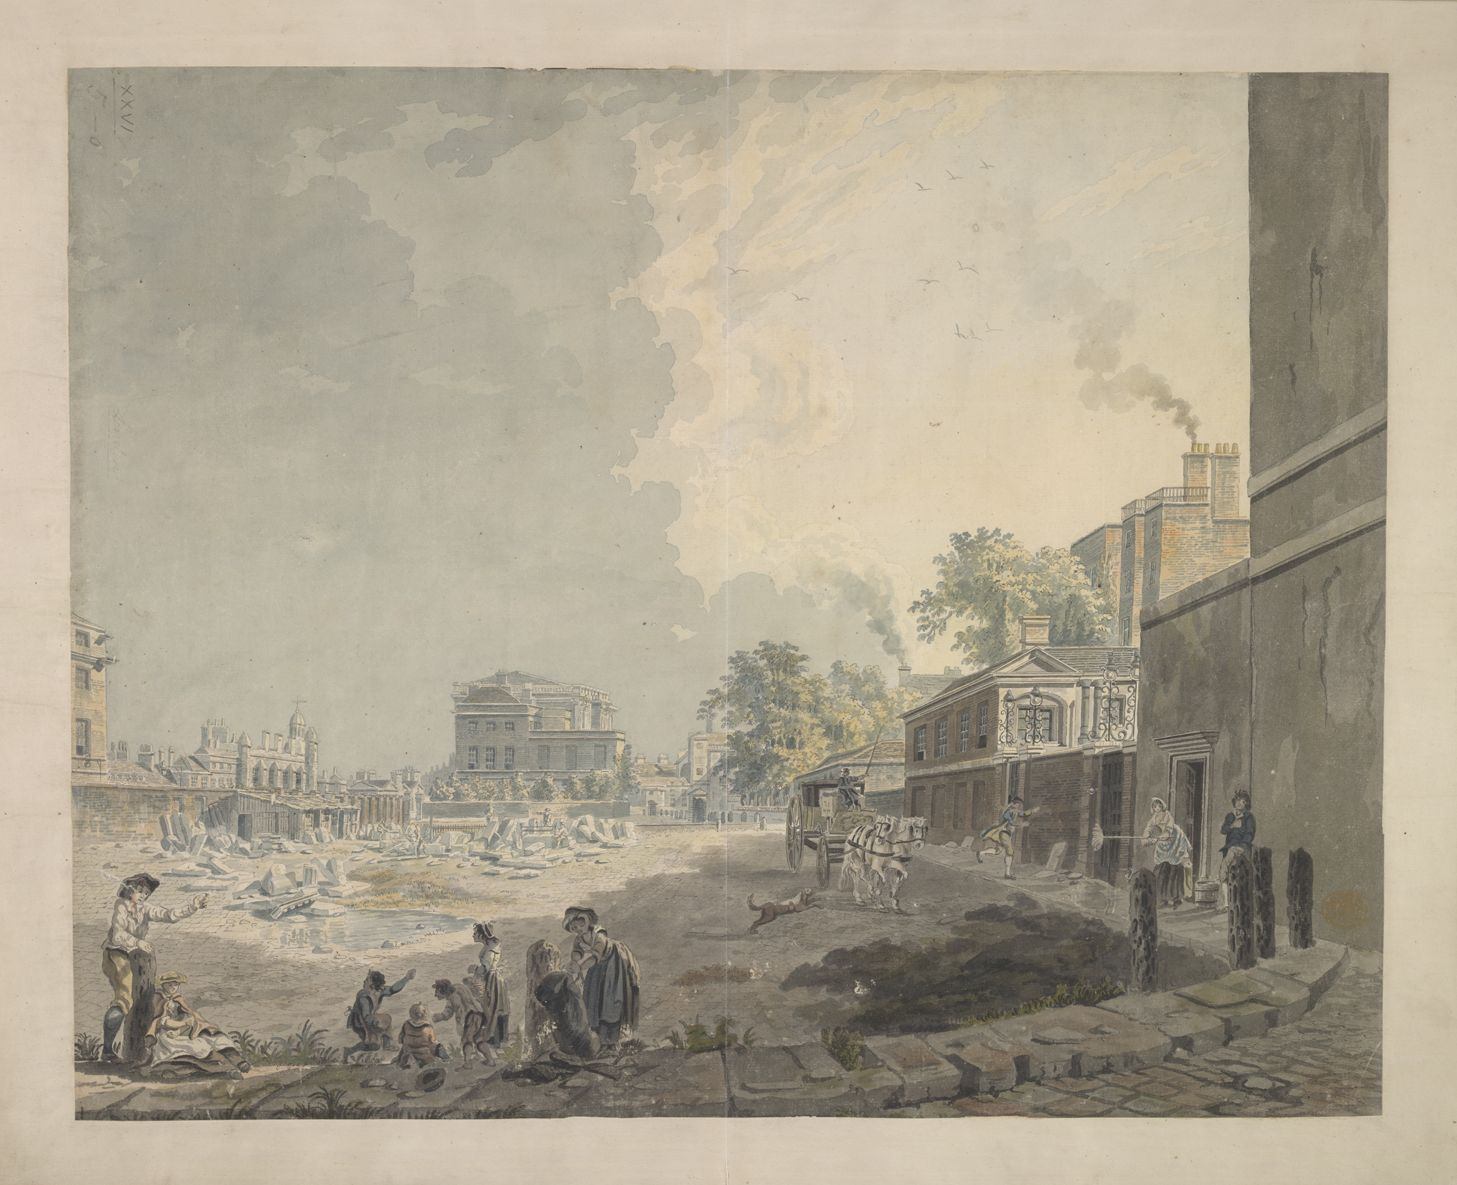 View of the back of Whitehall with figures sitting in the foreground; ruins in the middle ground; a horse and cart on the right. Paper bears a Whatman watermark.